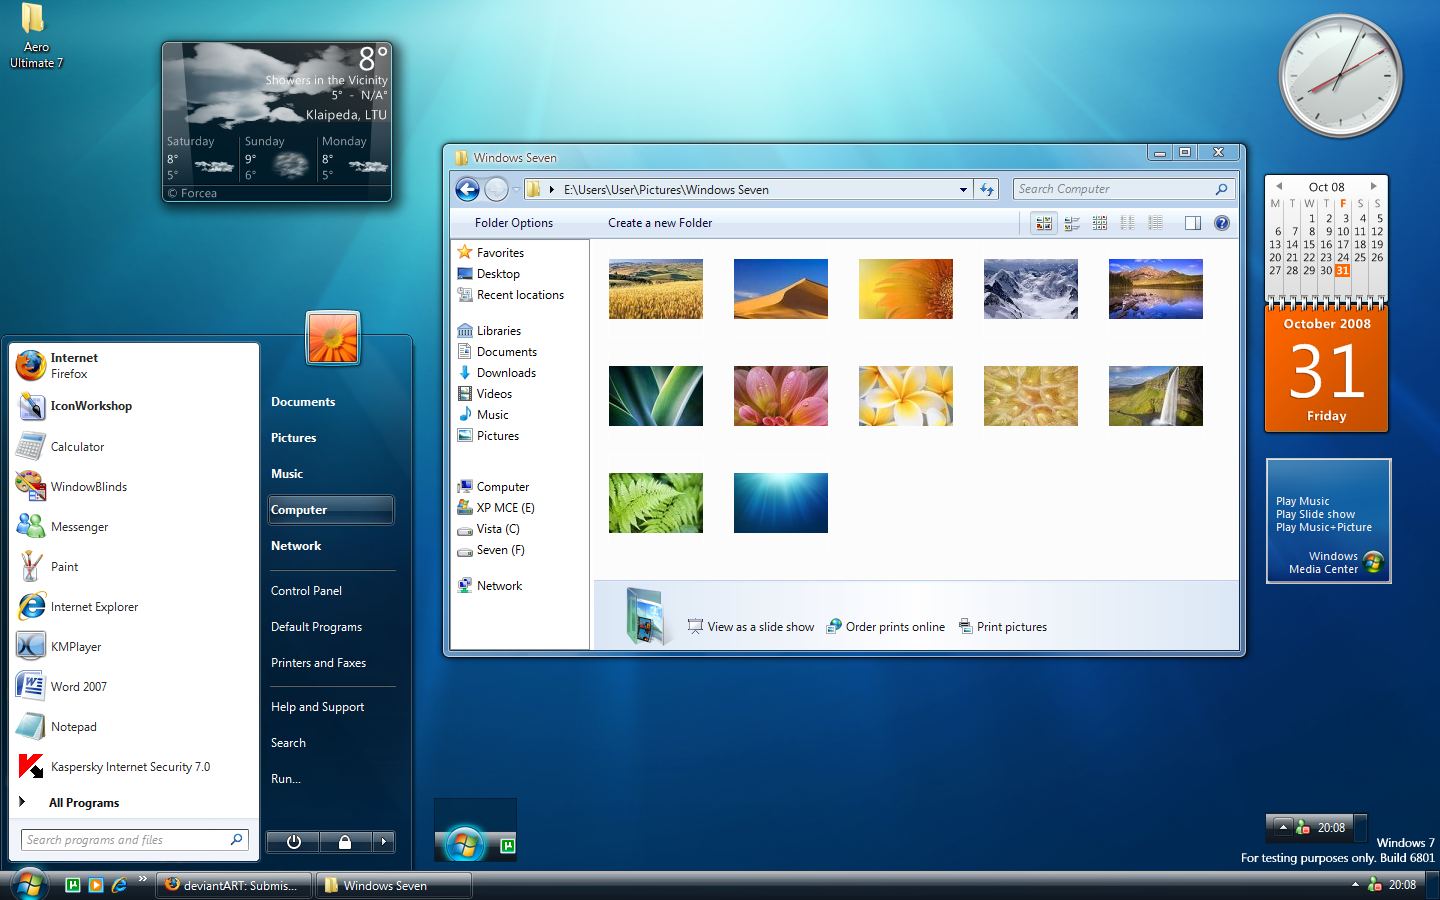 windows 7 professional 64 bit download utorrent